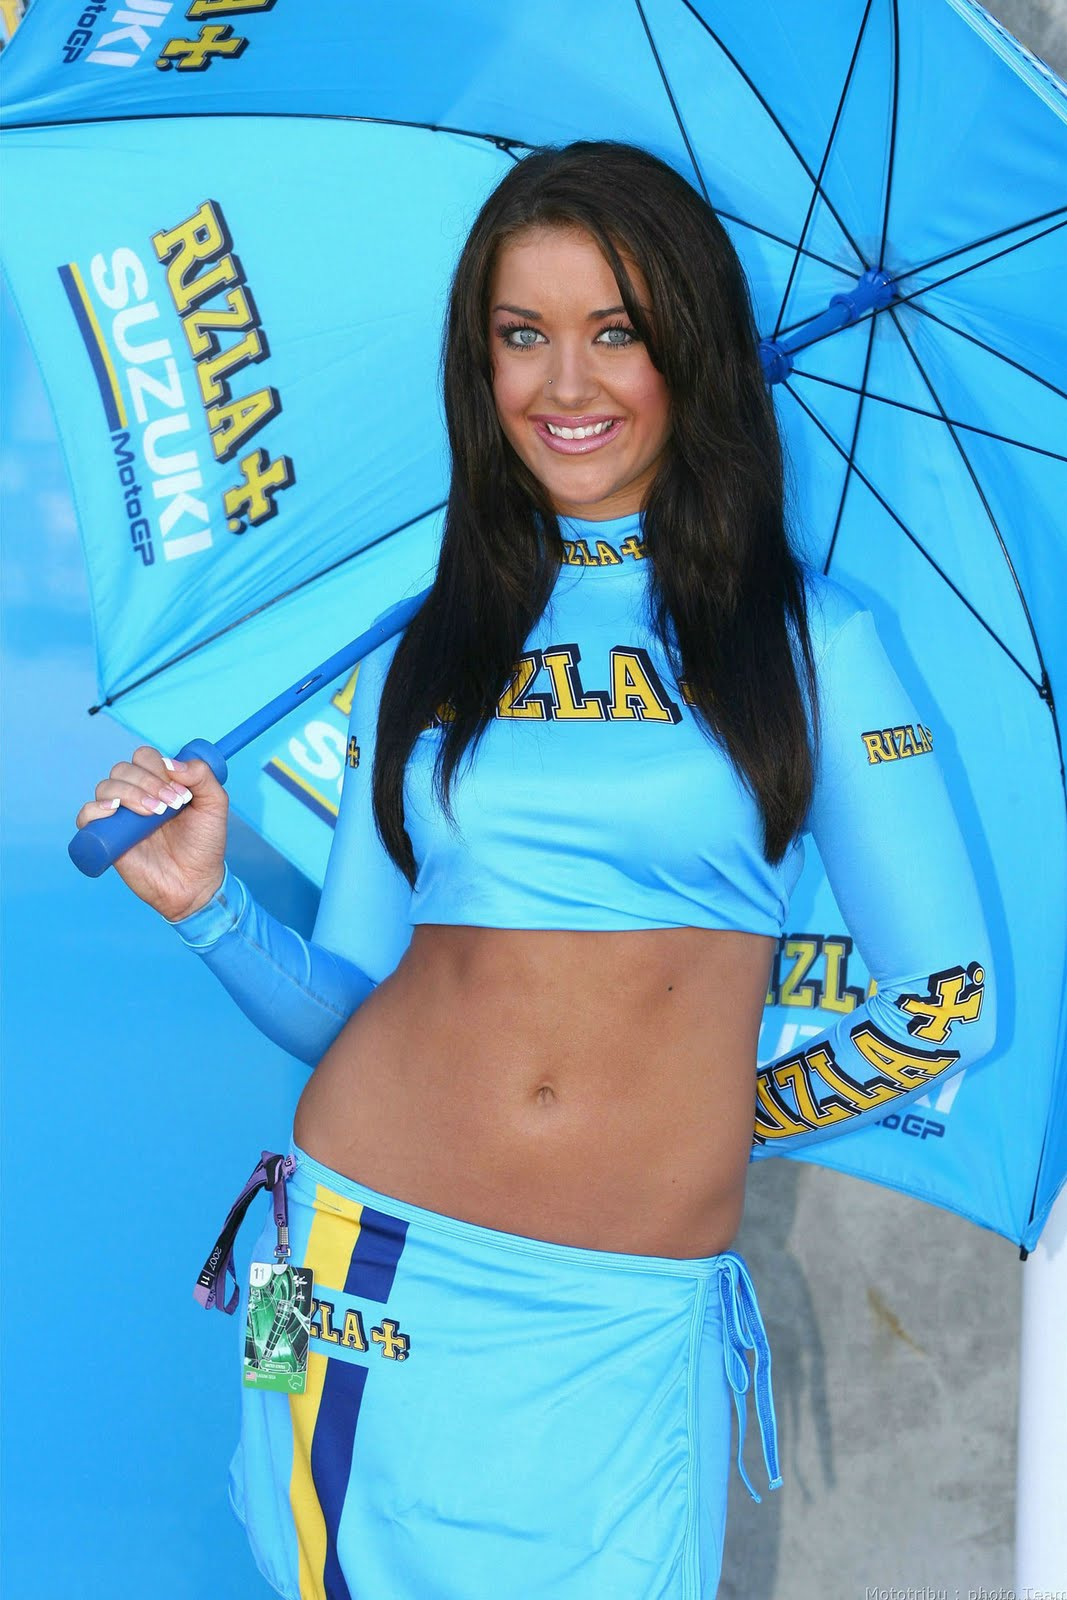 Sexy Umbrella Girl Paddock